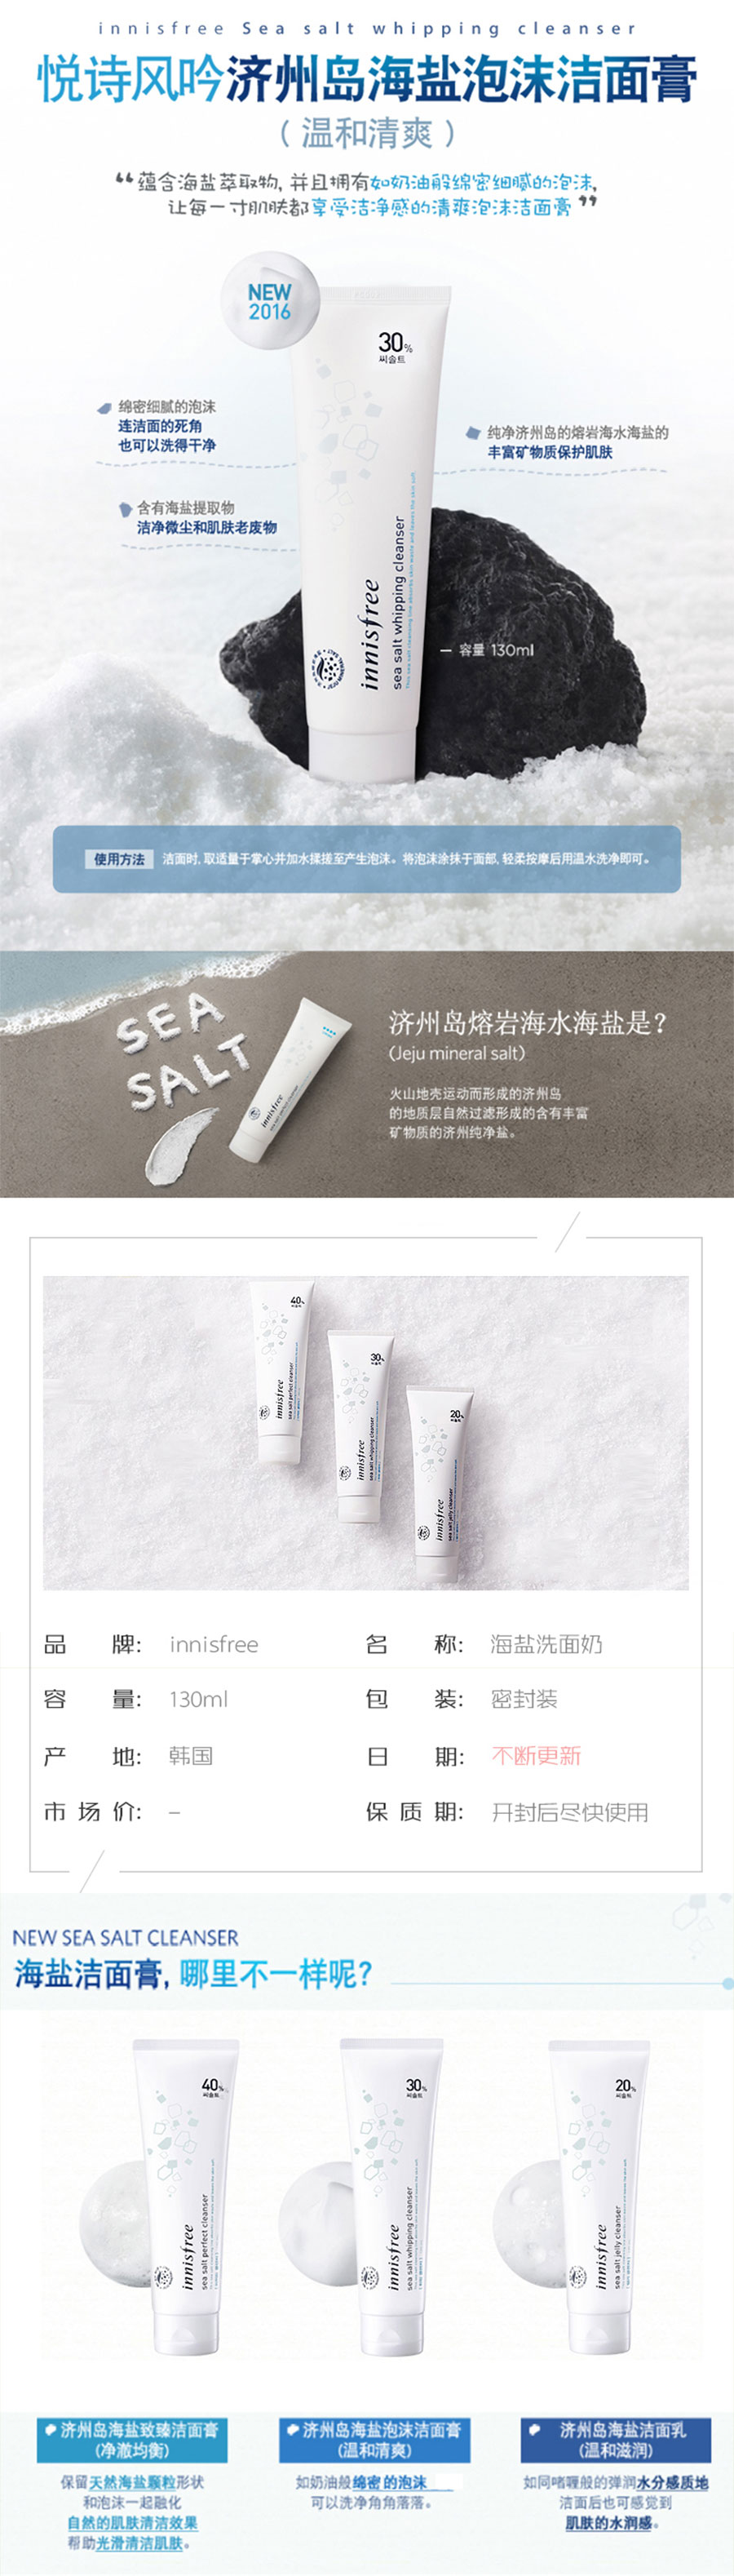 Sea Salt Whipping Cleanser - Intro